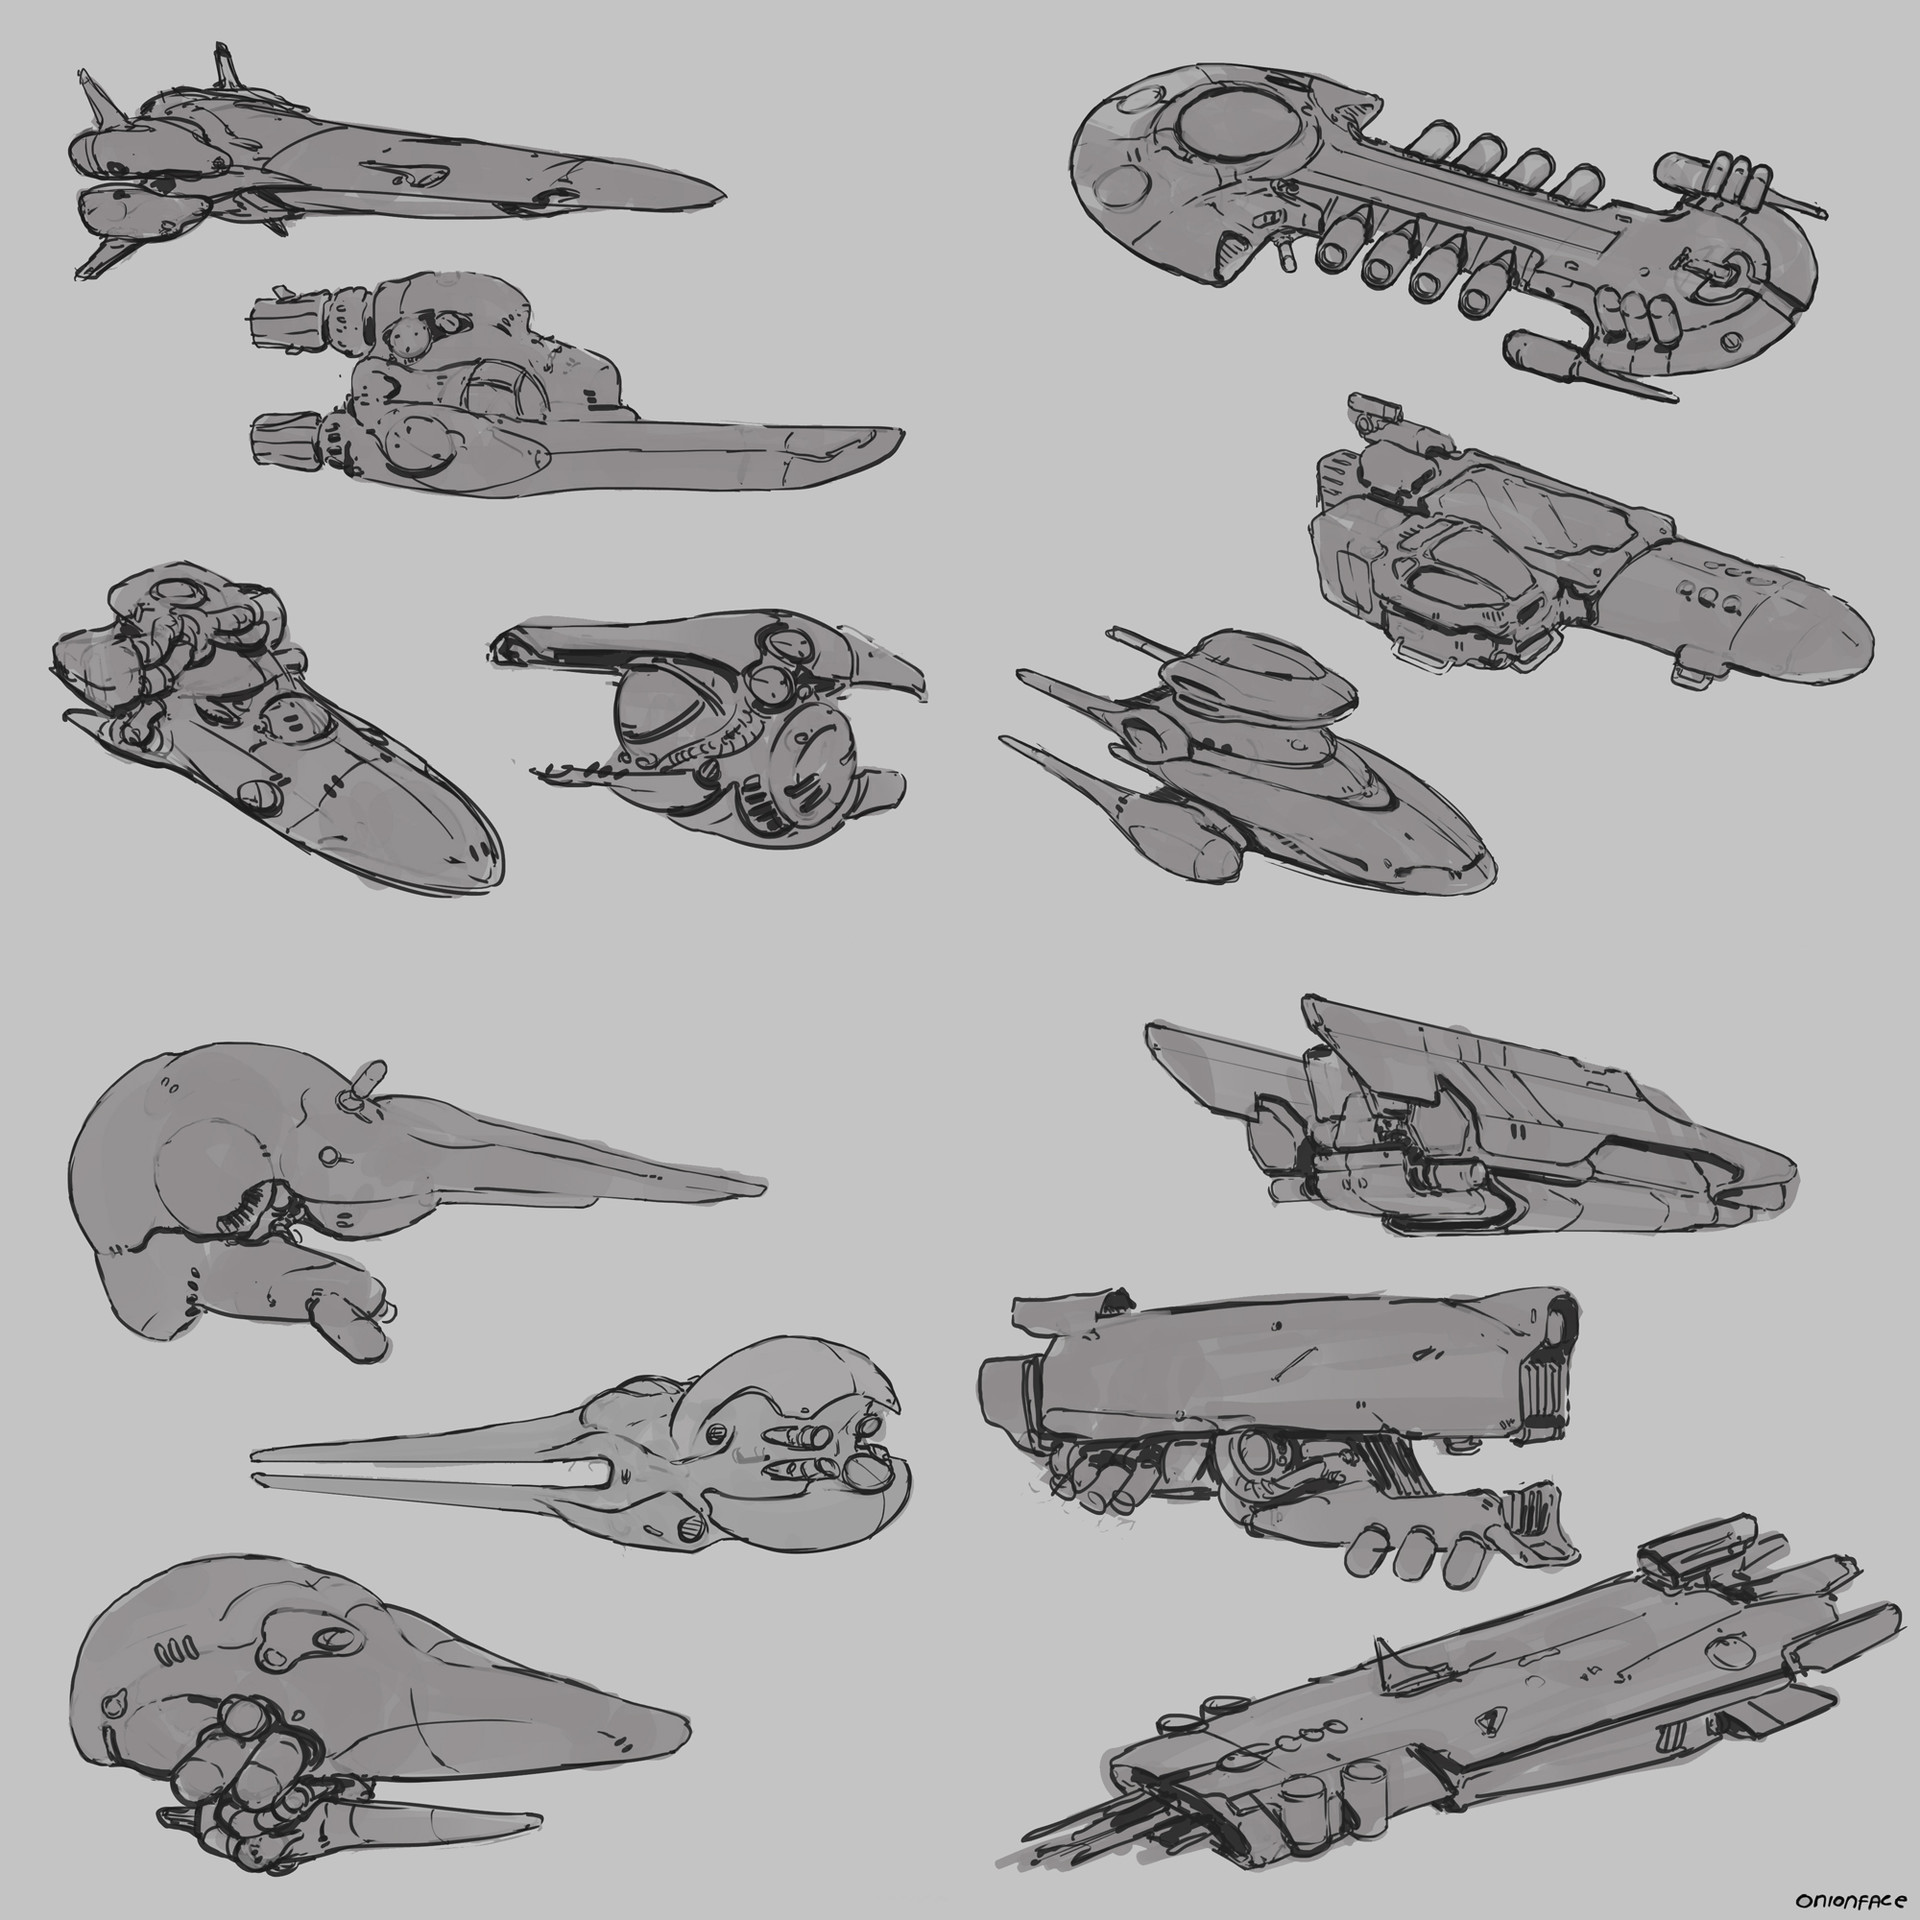 West clendinning spaceship doodles 03